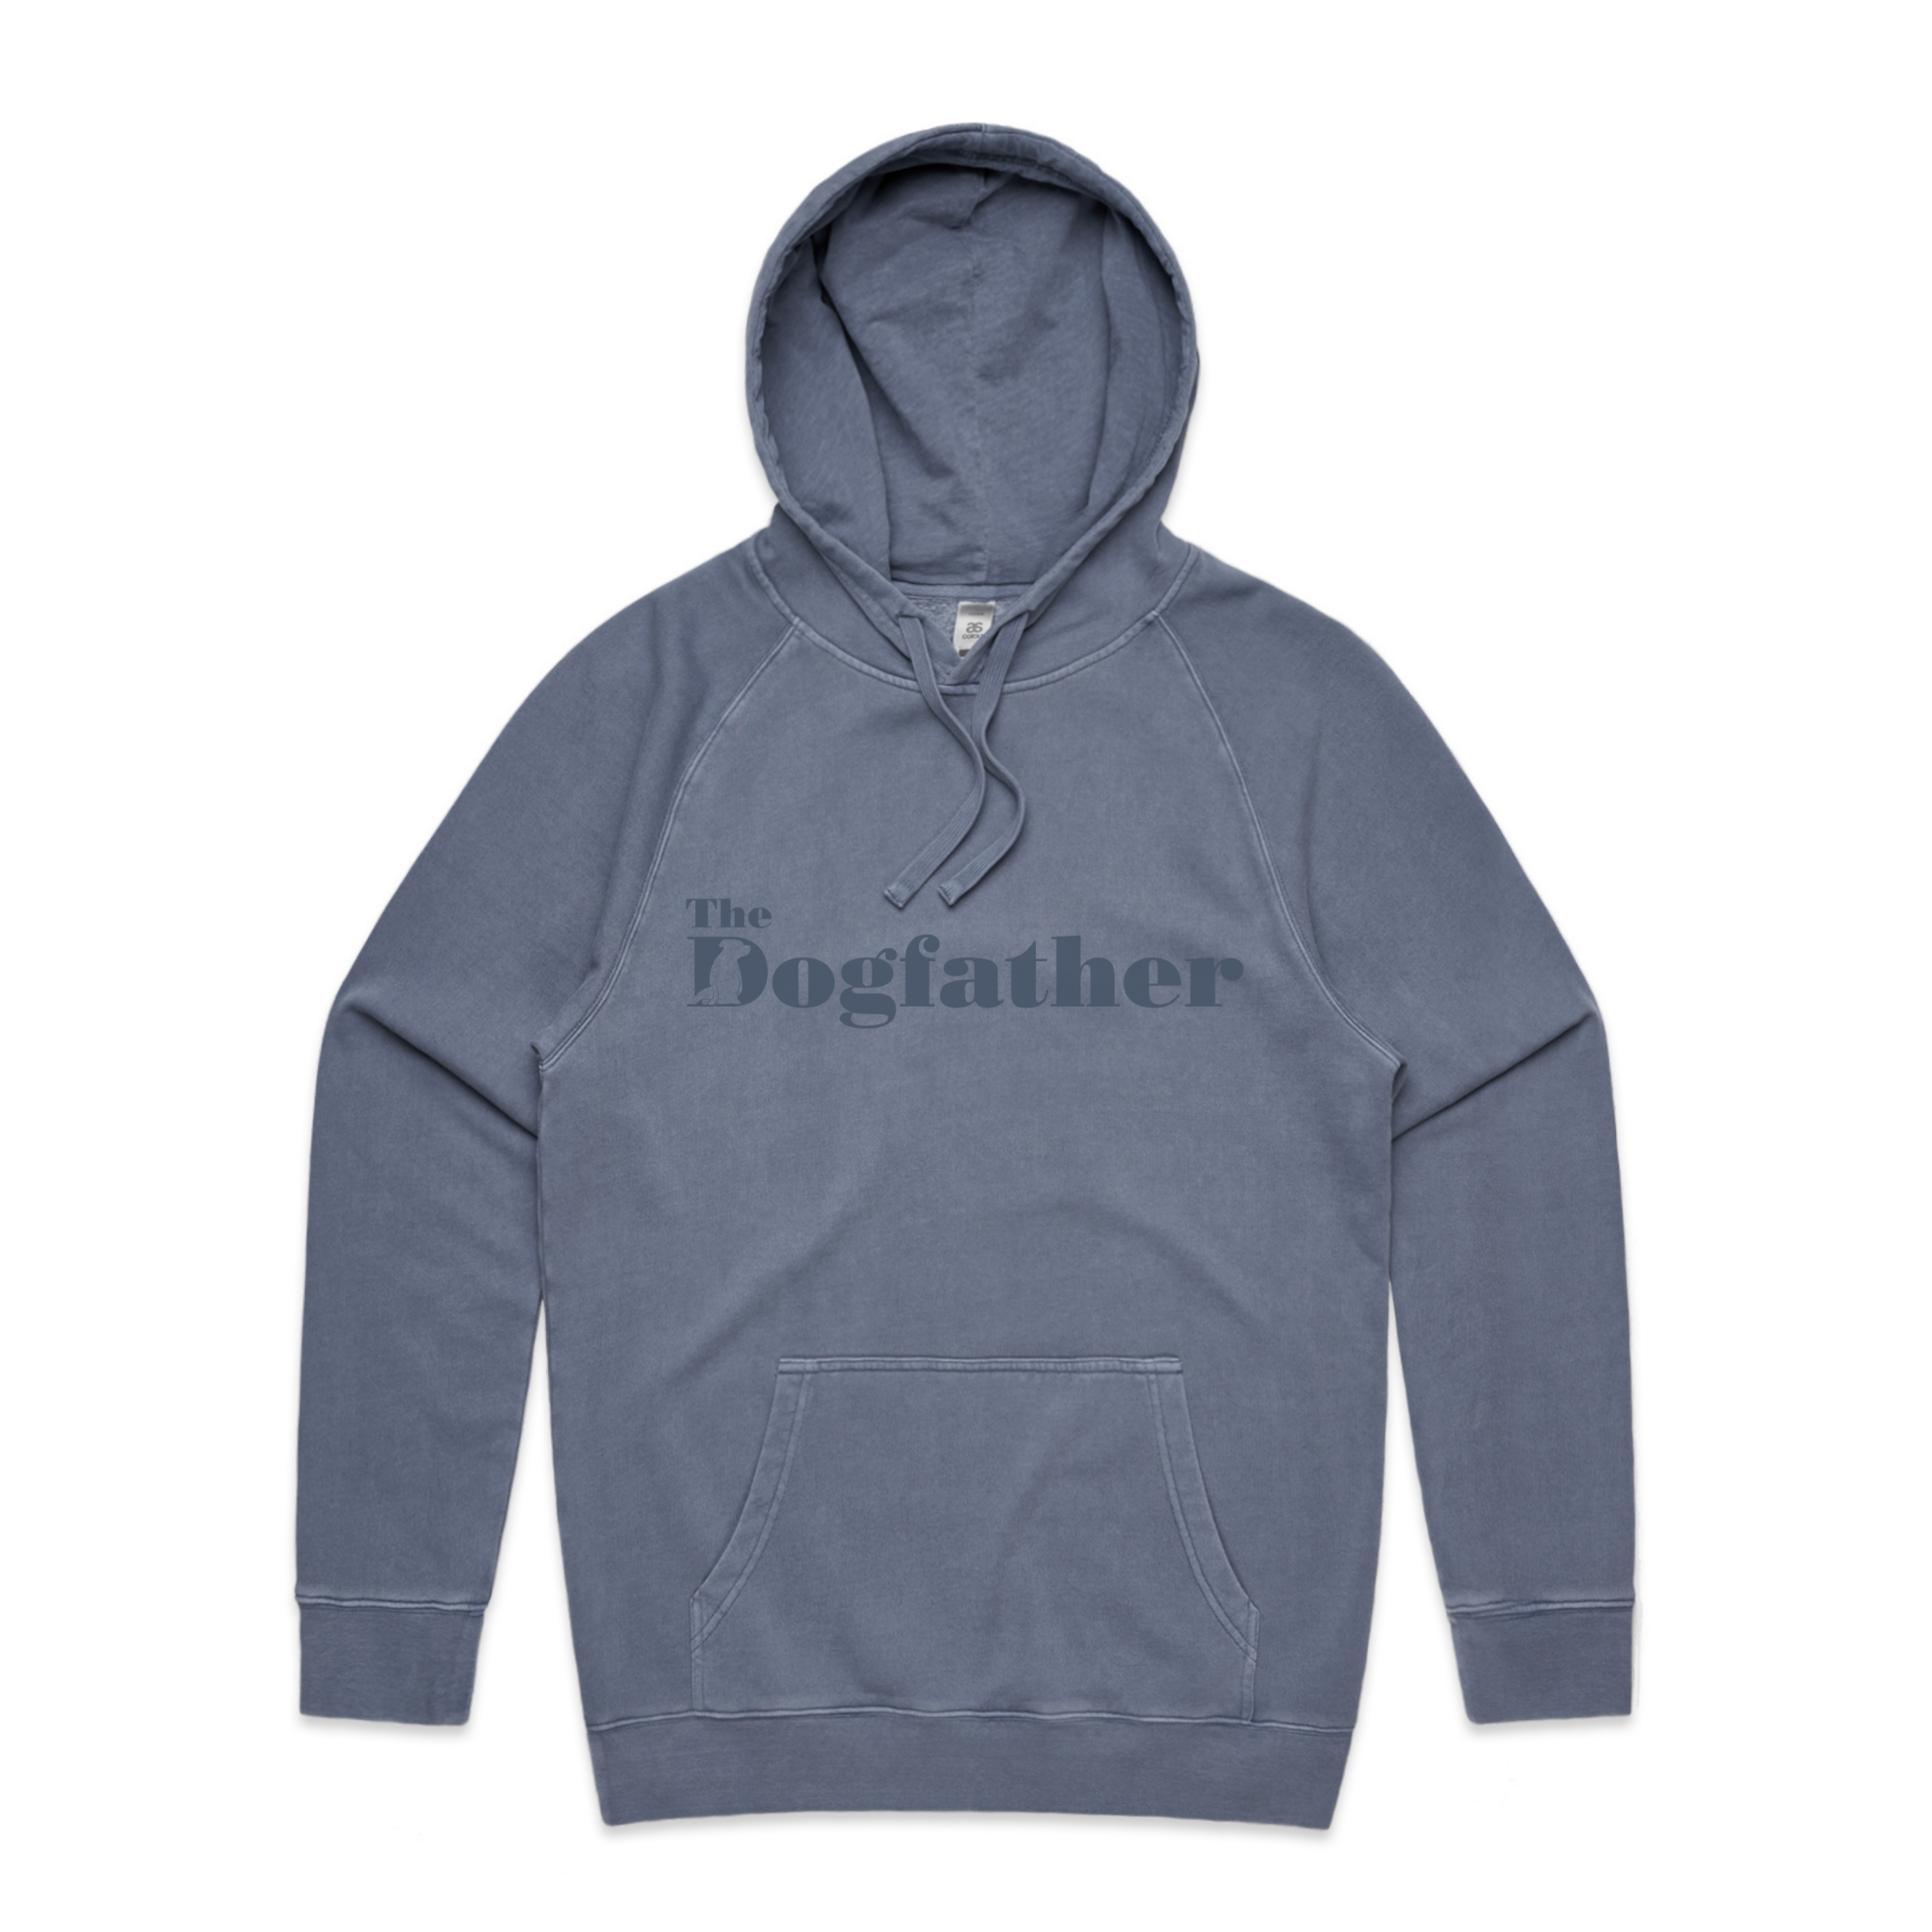 Men's The DogFather I Hoodie